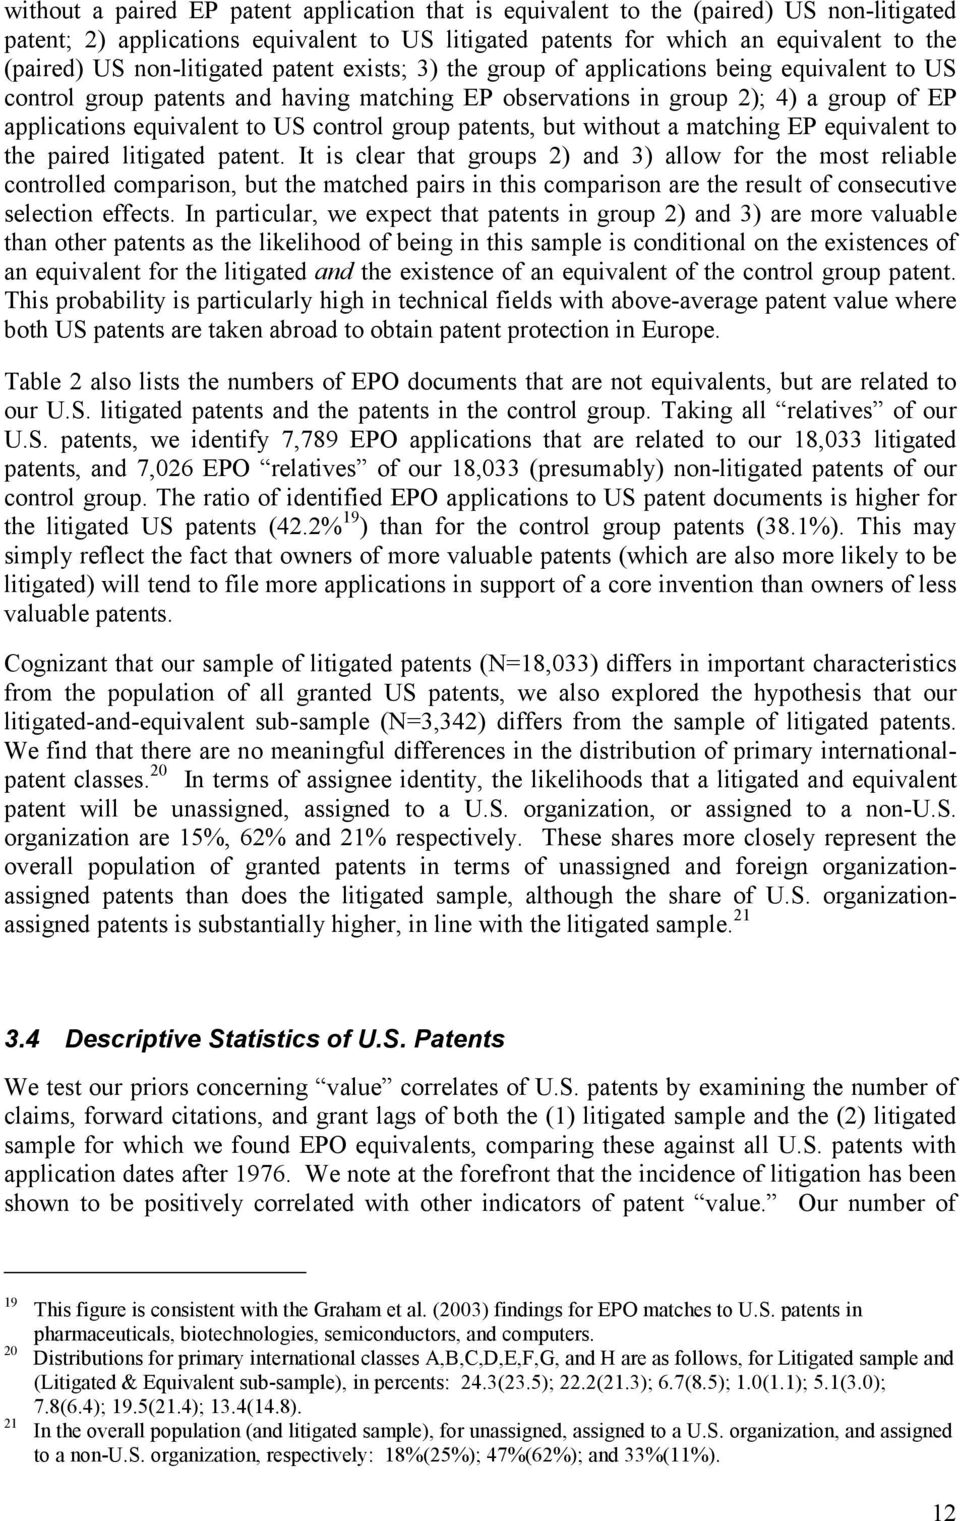 control group patents, but without a matching EP equivalent to the paired litigated patent.